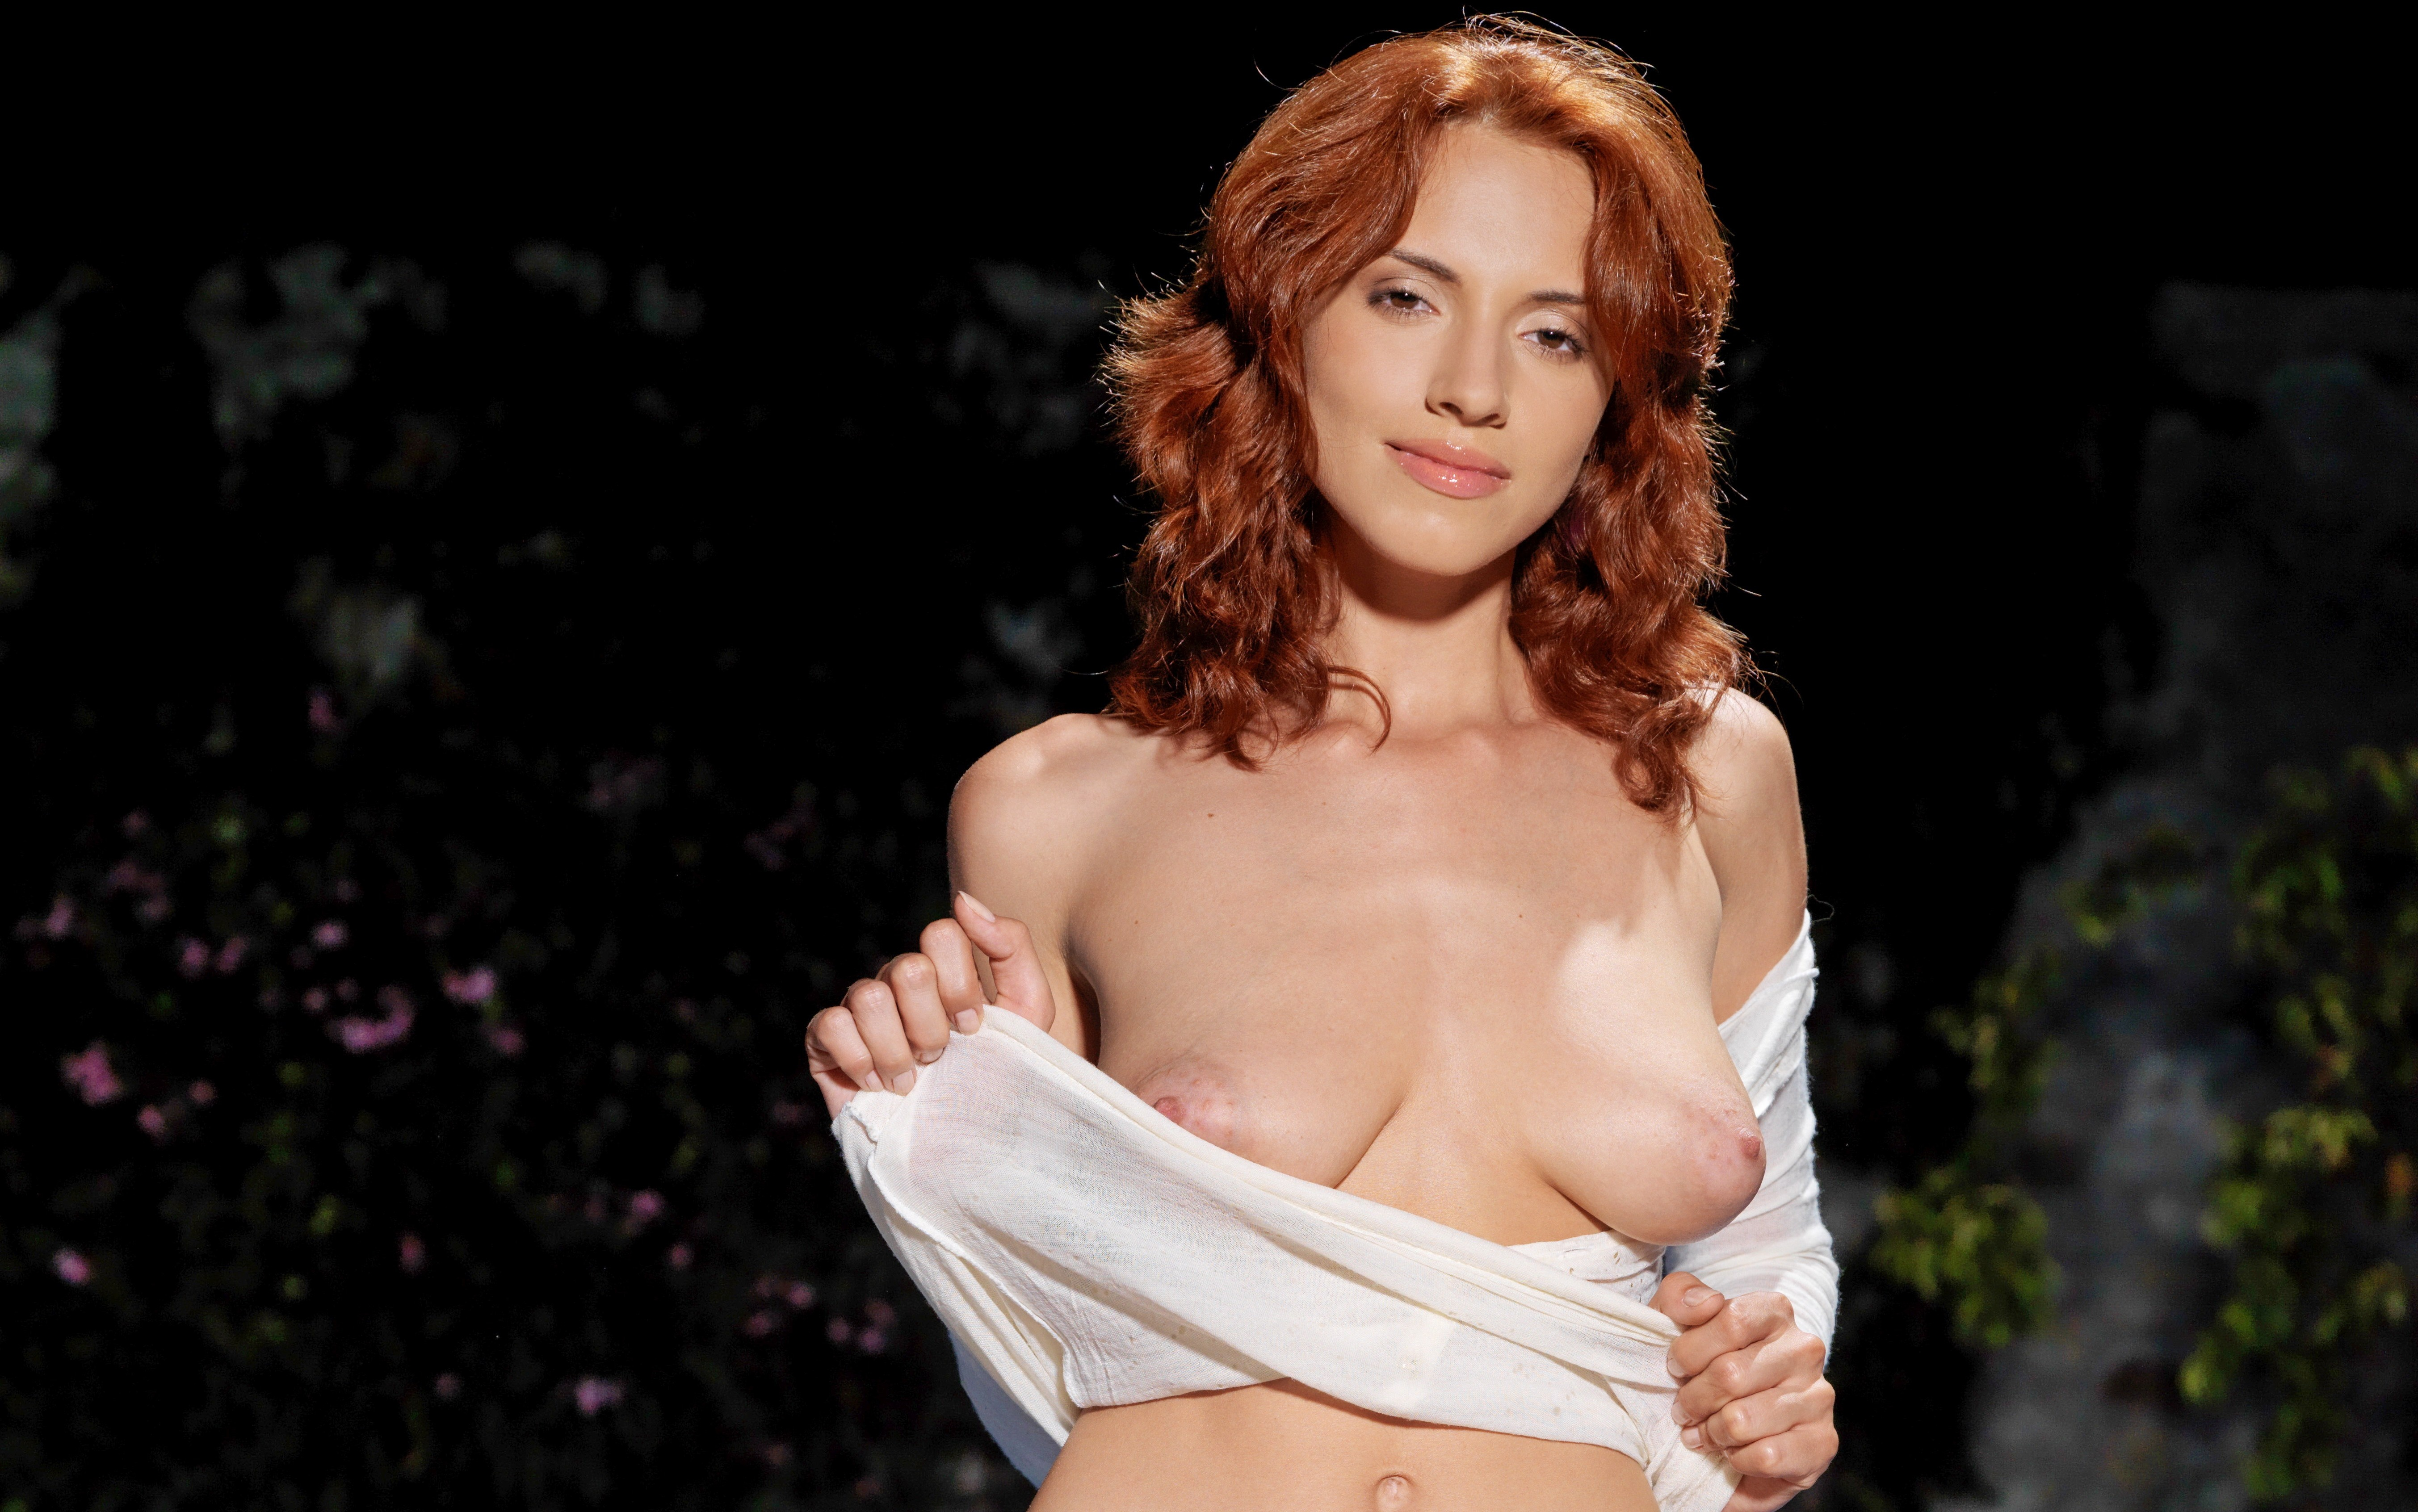 What excellent redhead bra nipples seems excellent